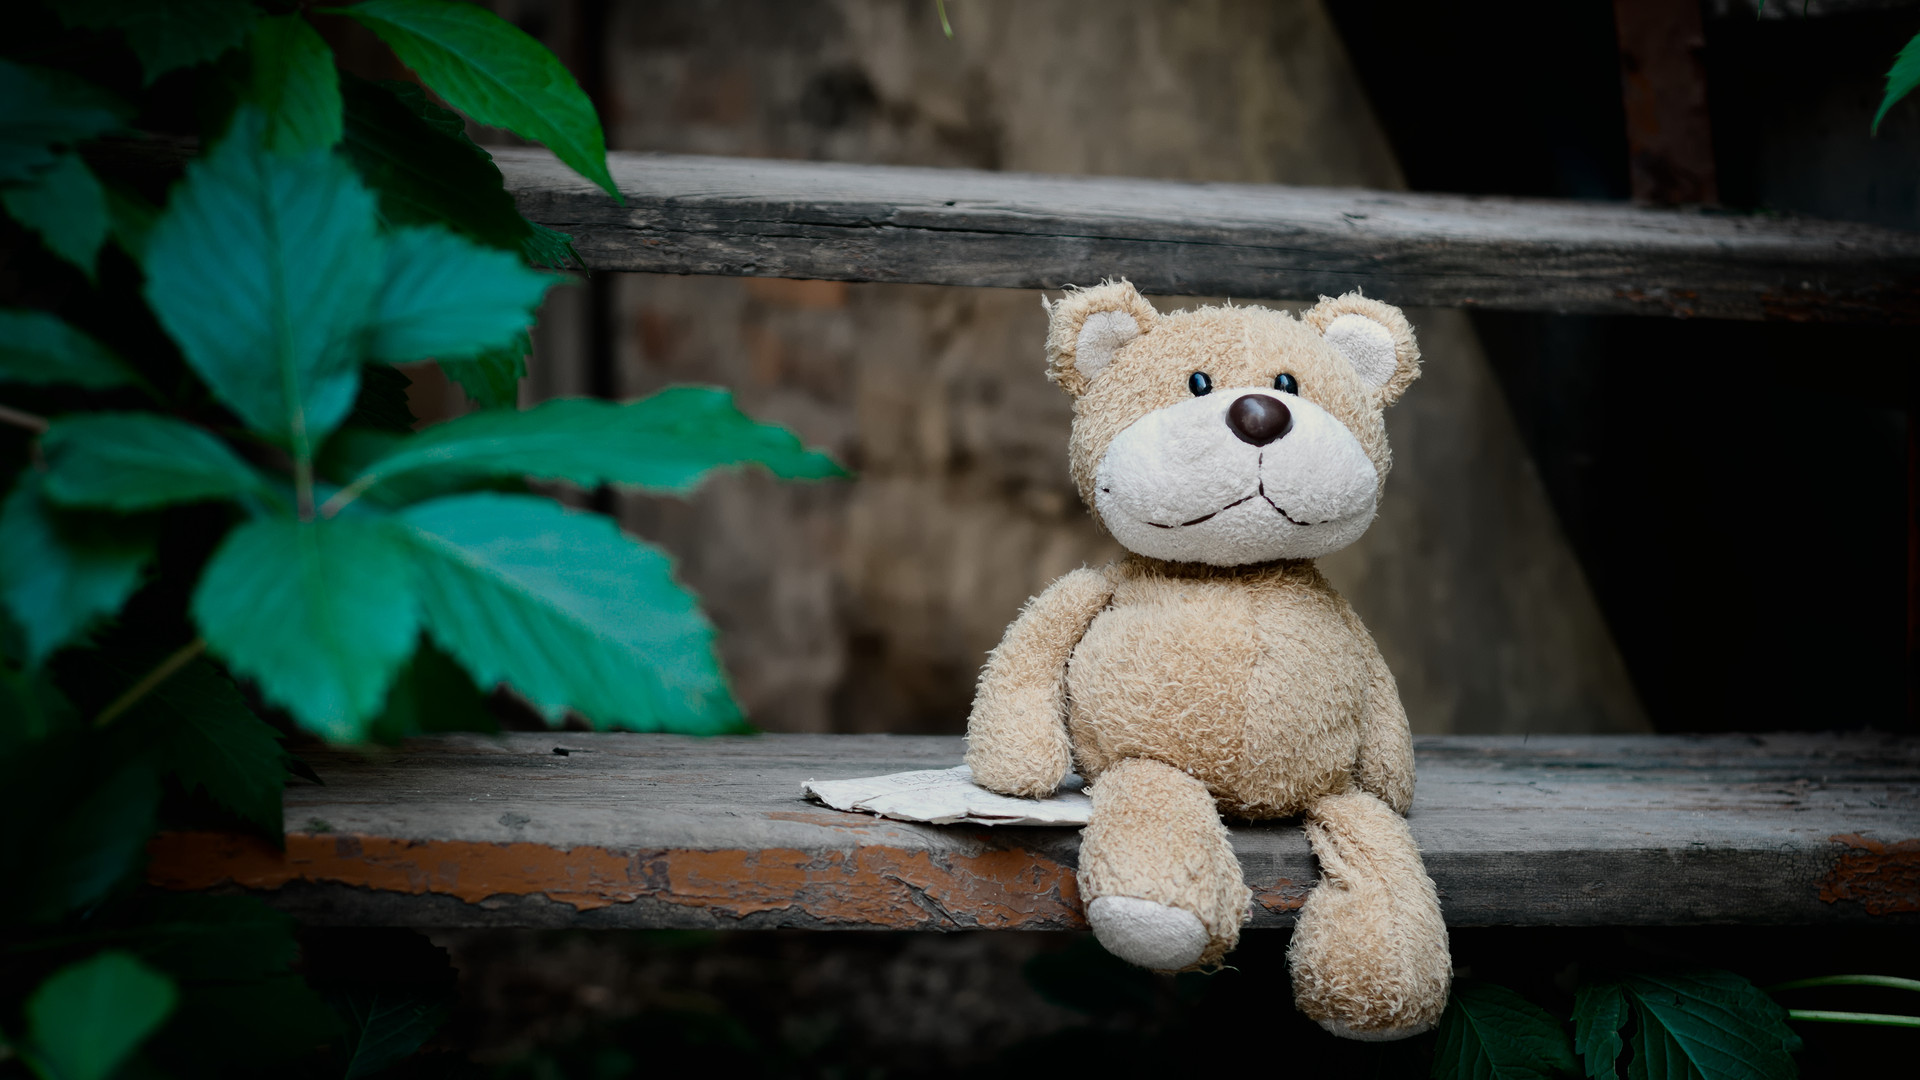 Canva - Brown Bear Plush Toy on Wooden S